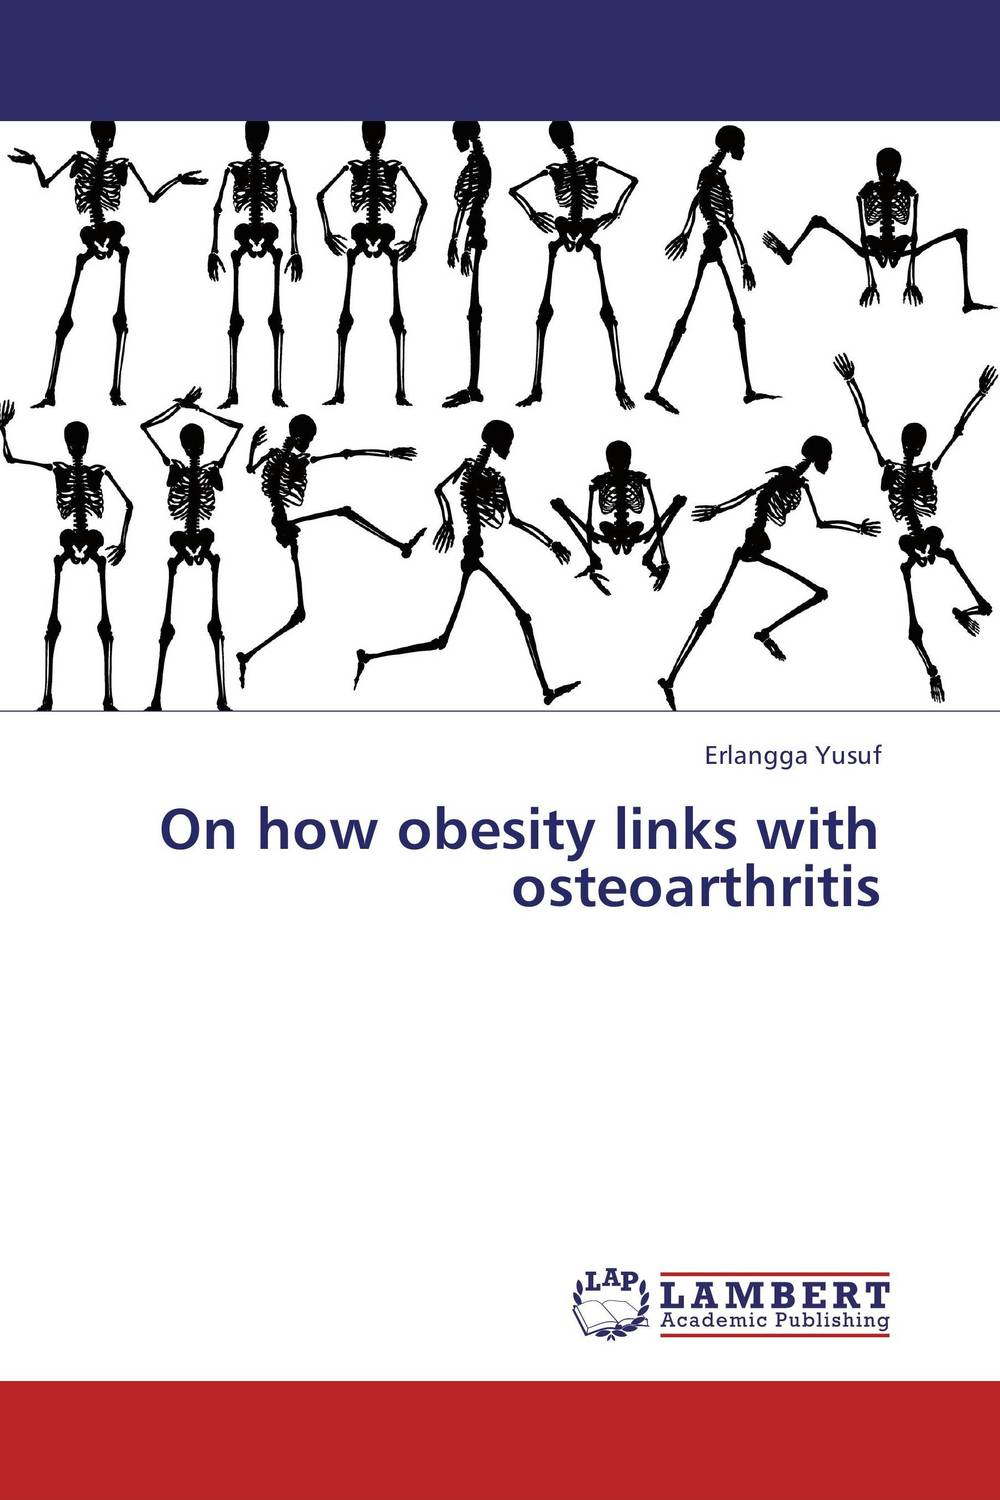 On how obesity links with osteoarthritis